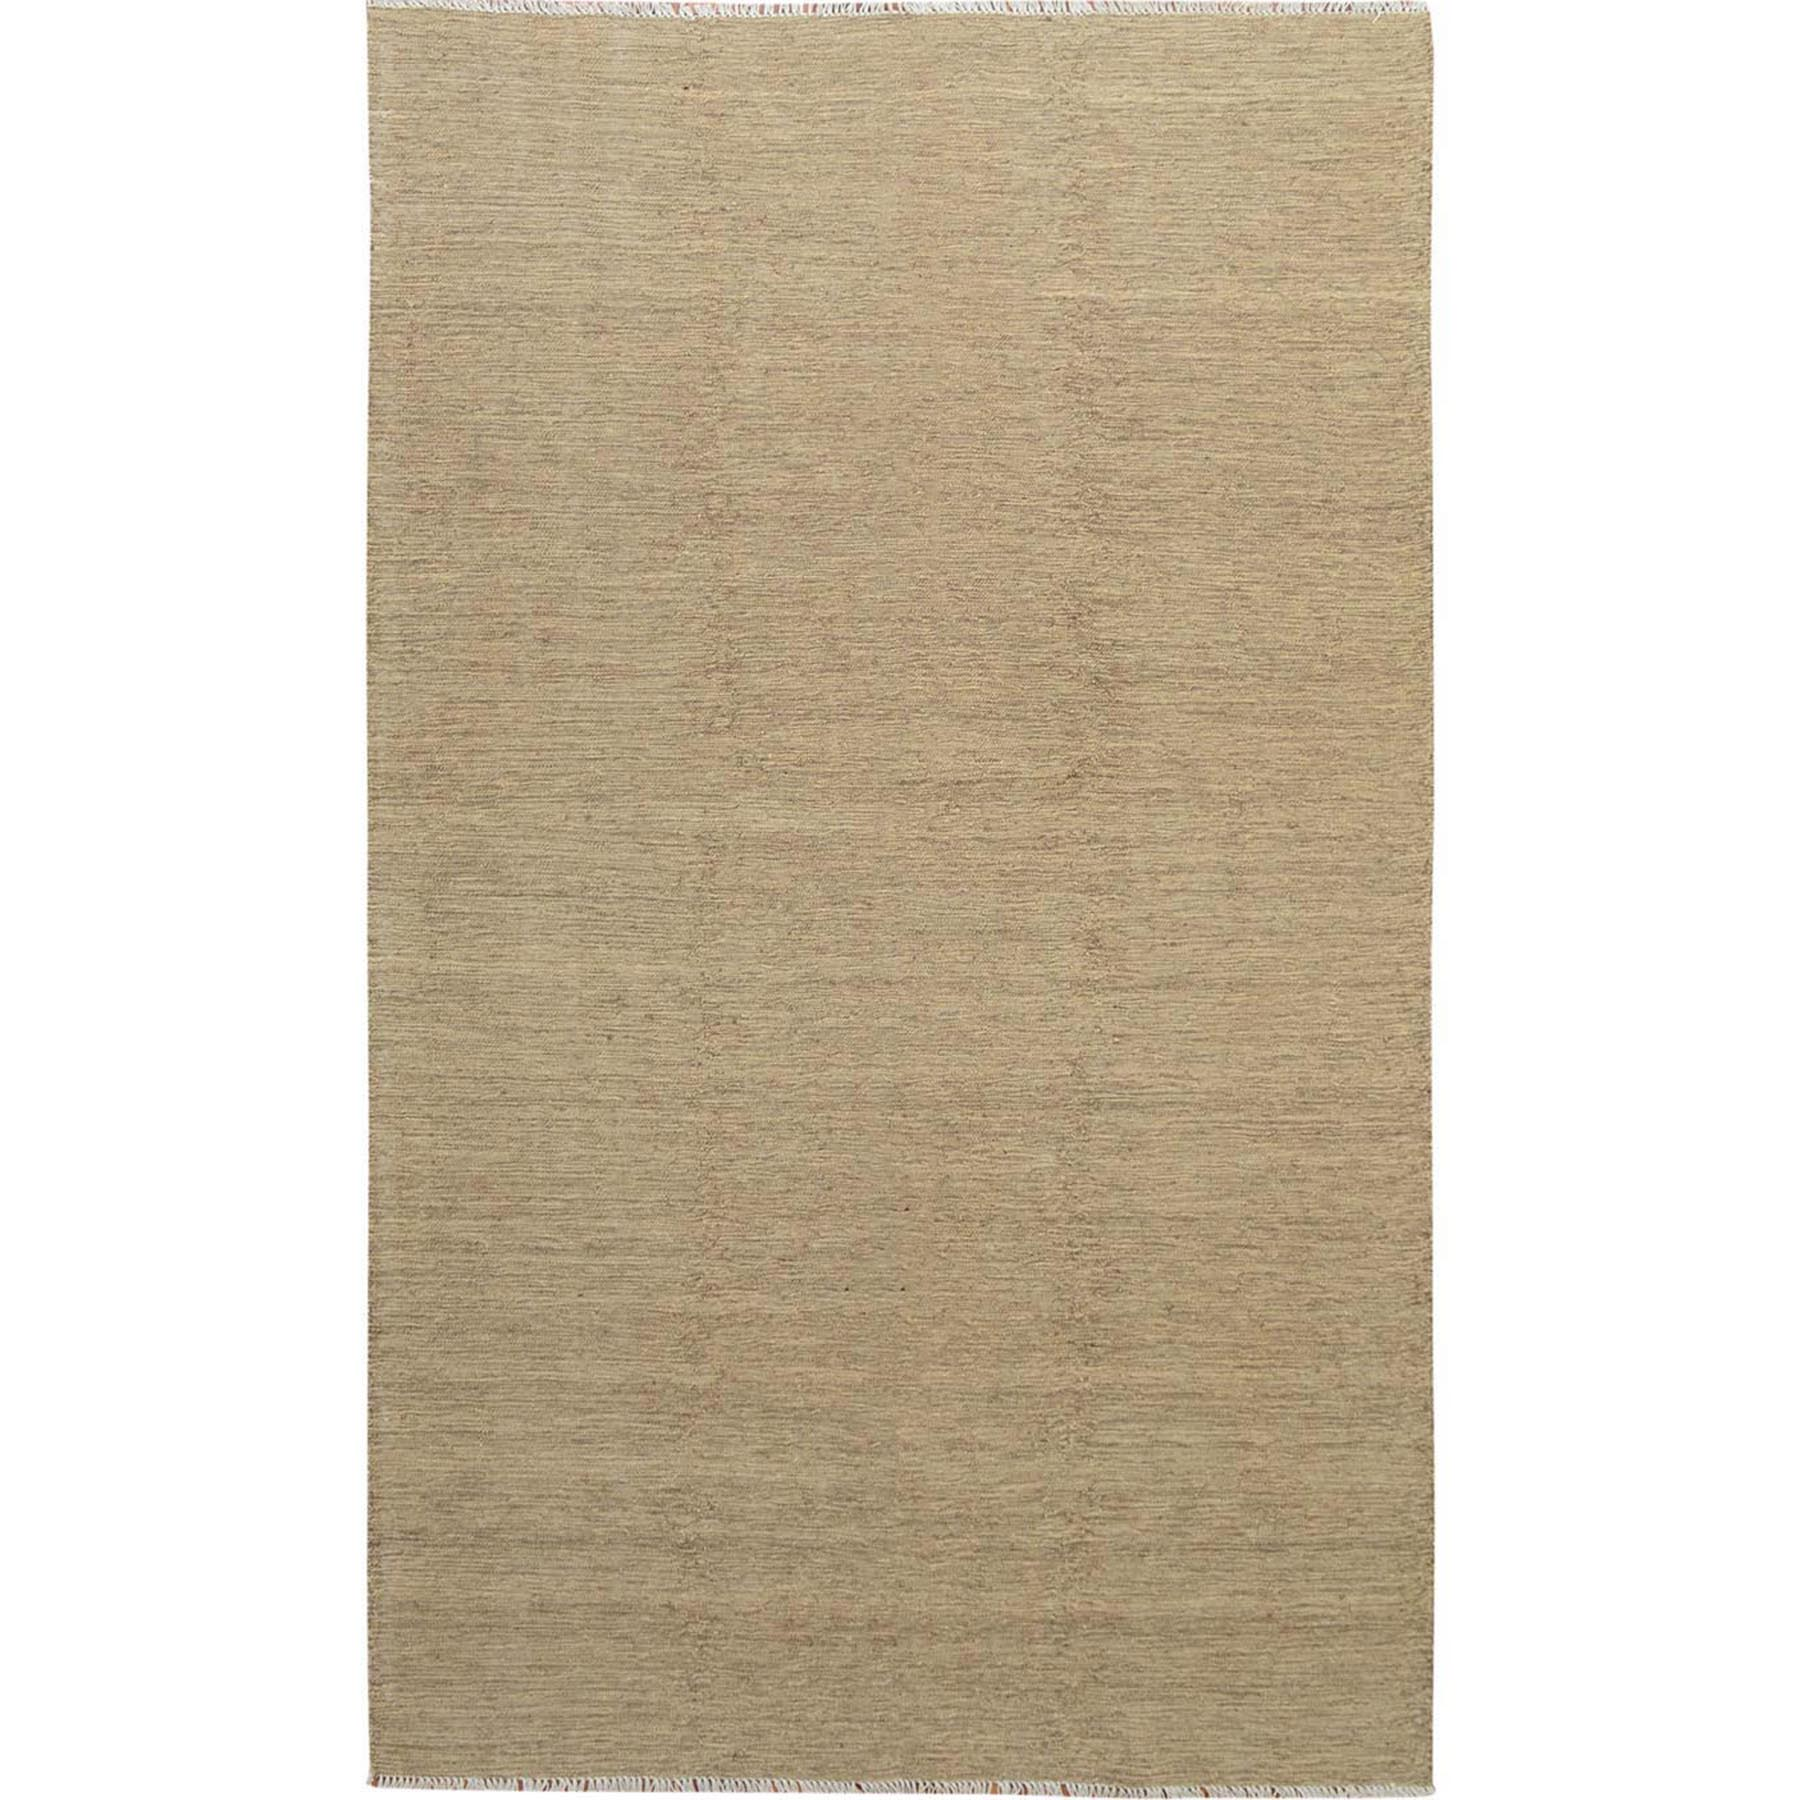 Fine Kilim Collection Hand Woven Ivory Rug No: 01115014